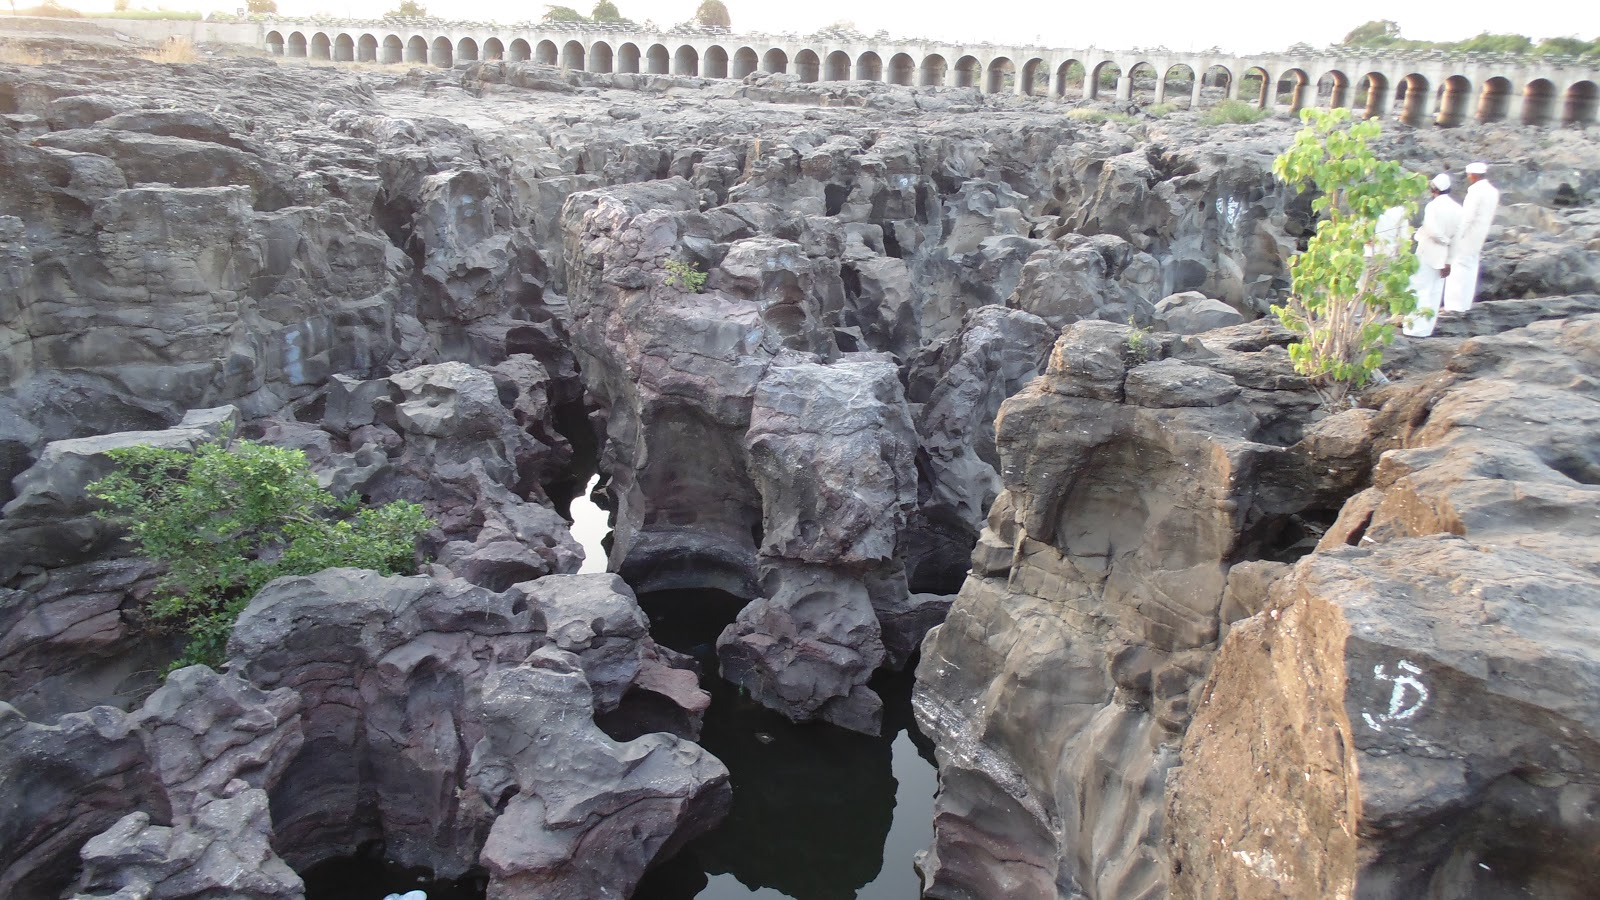 Nighoj village potholes (kund)on Kukadi river near pune